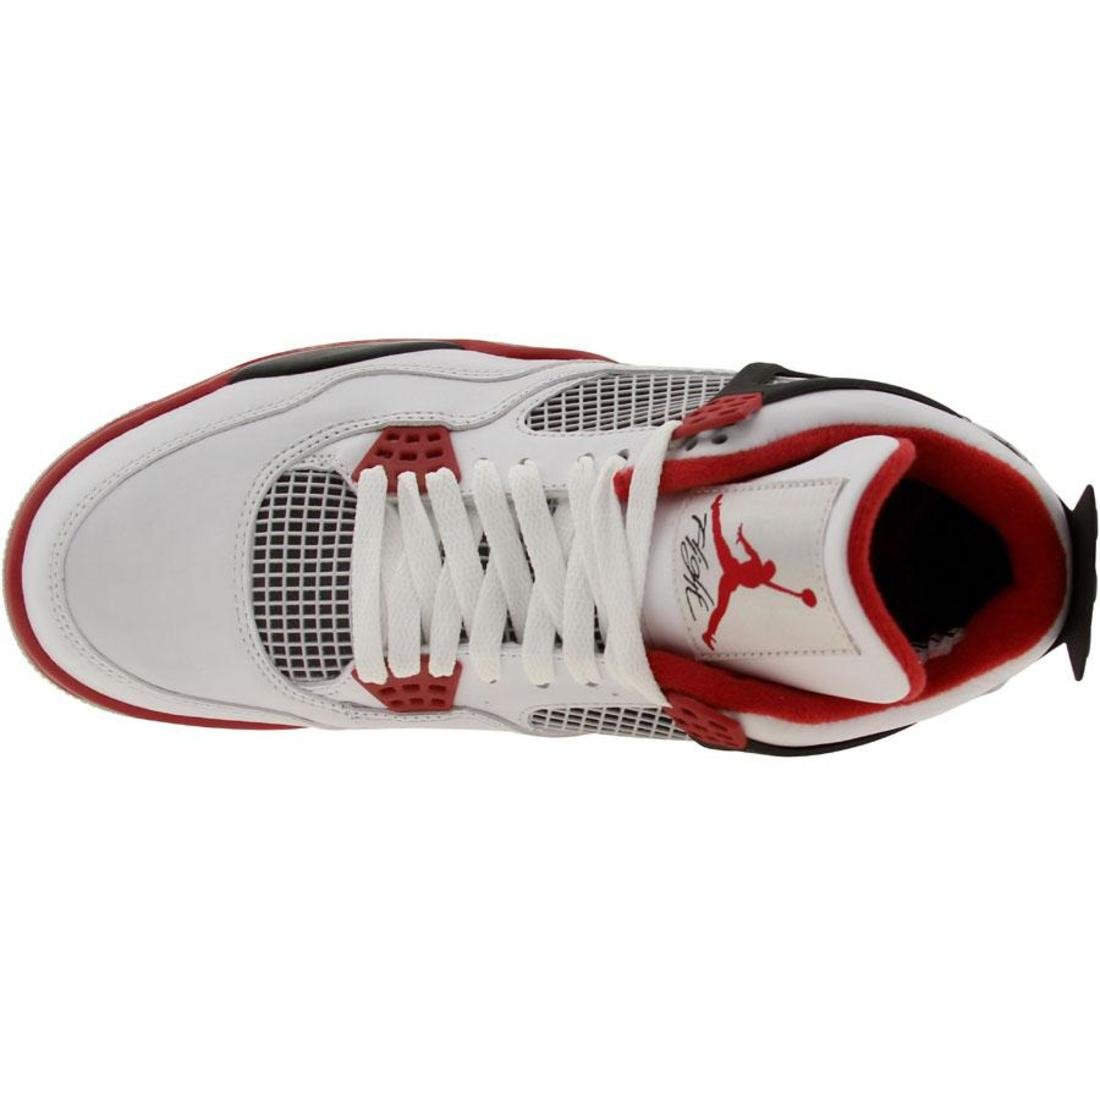 c09c4de94a905 Galleon - Air Jordan 4 Retro Man Sneakers In White/Varsity Red/Black ...